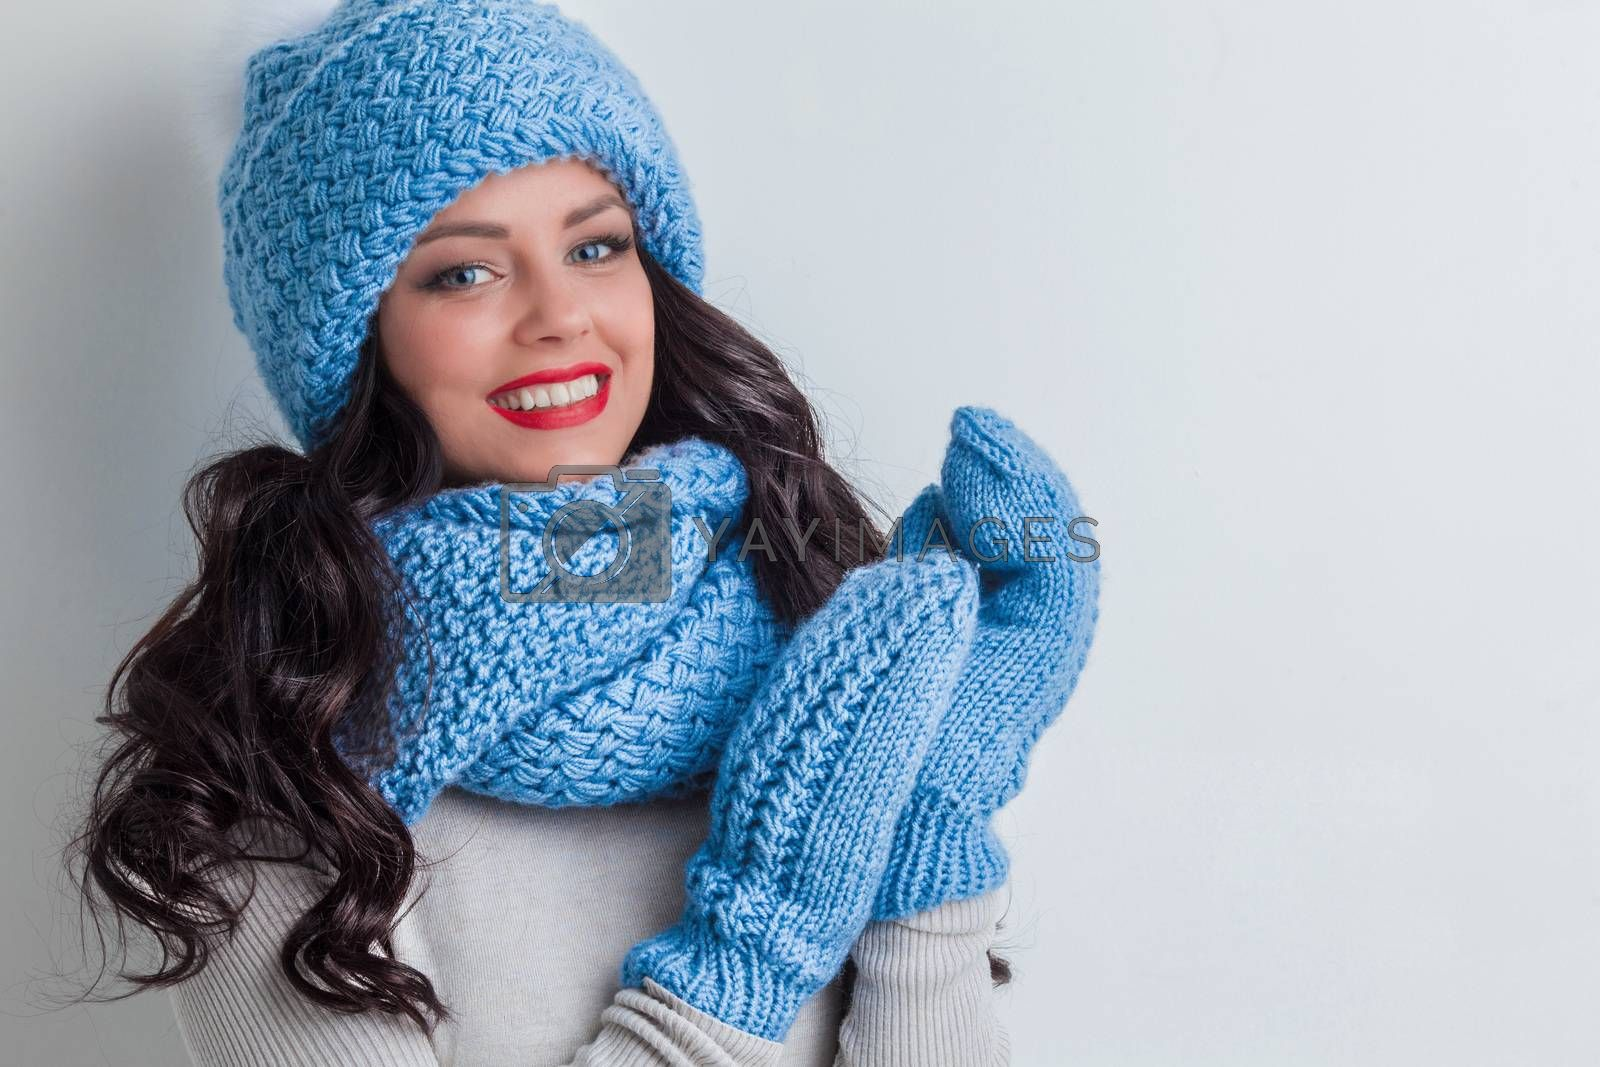 Smiling woman wearing blue winter hat, scarf and mittens